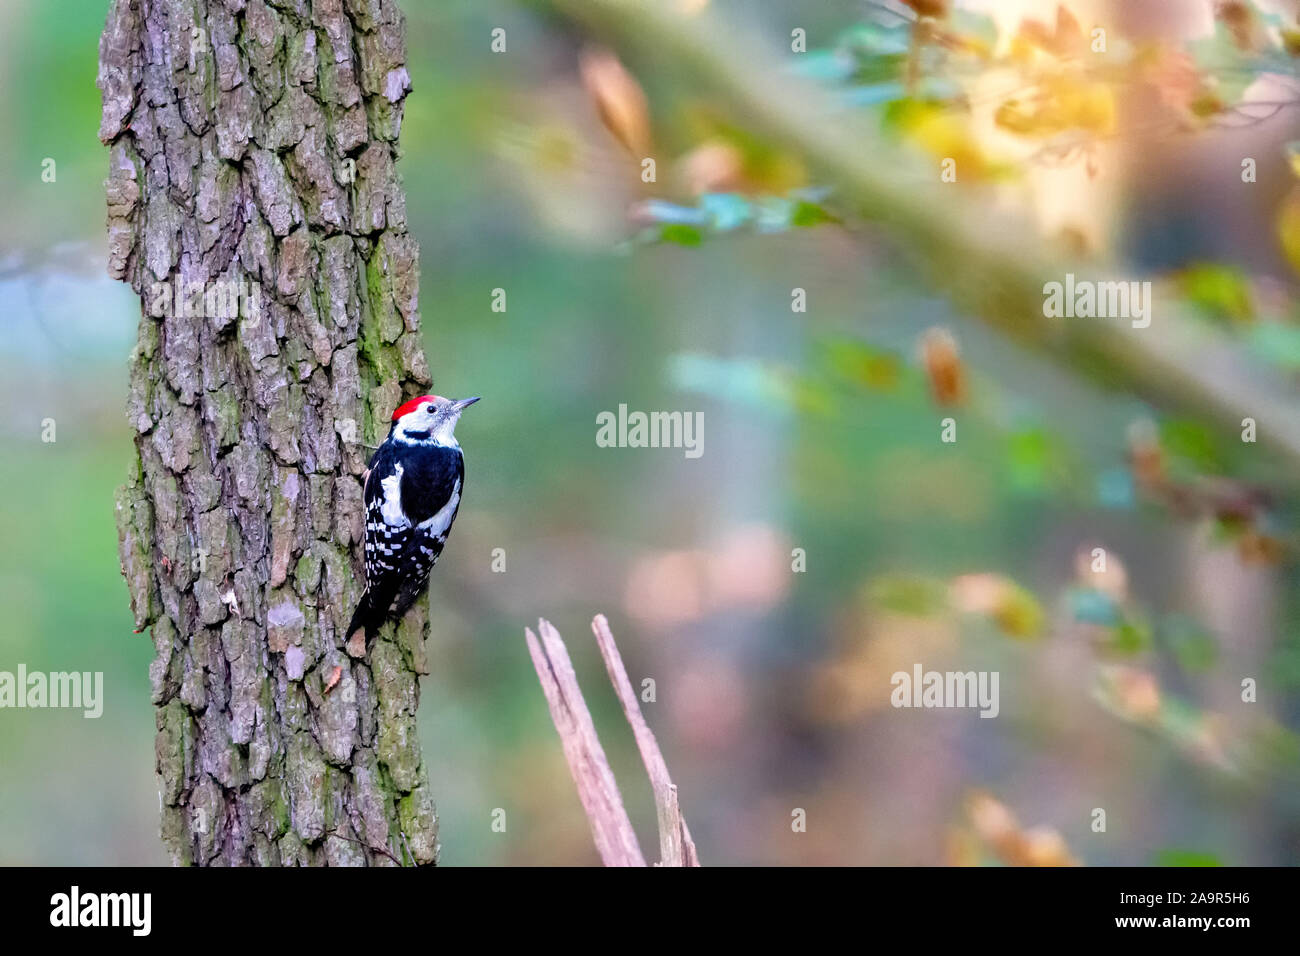 Middle spotted woodpecker (Dendrocoptes medius) sitting on a tree trunk in the nature protection area Moenchbruch near Frankfurt, Germany. Stock Photo